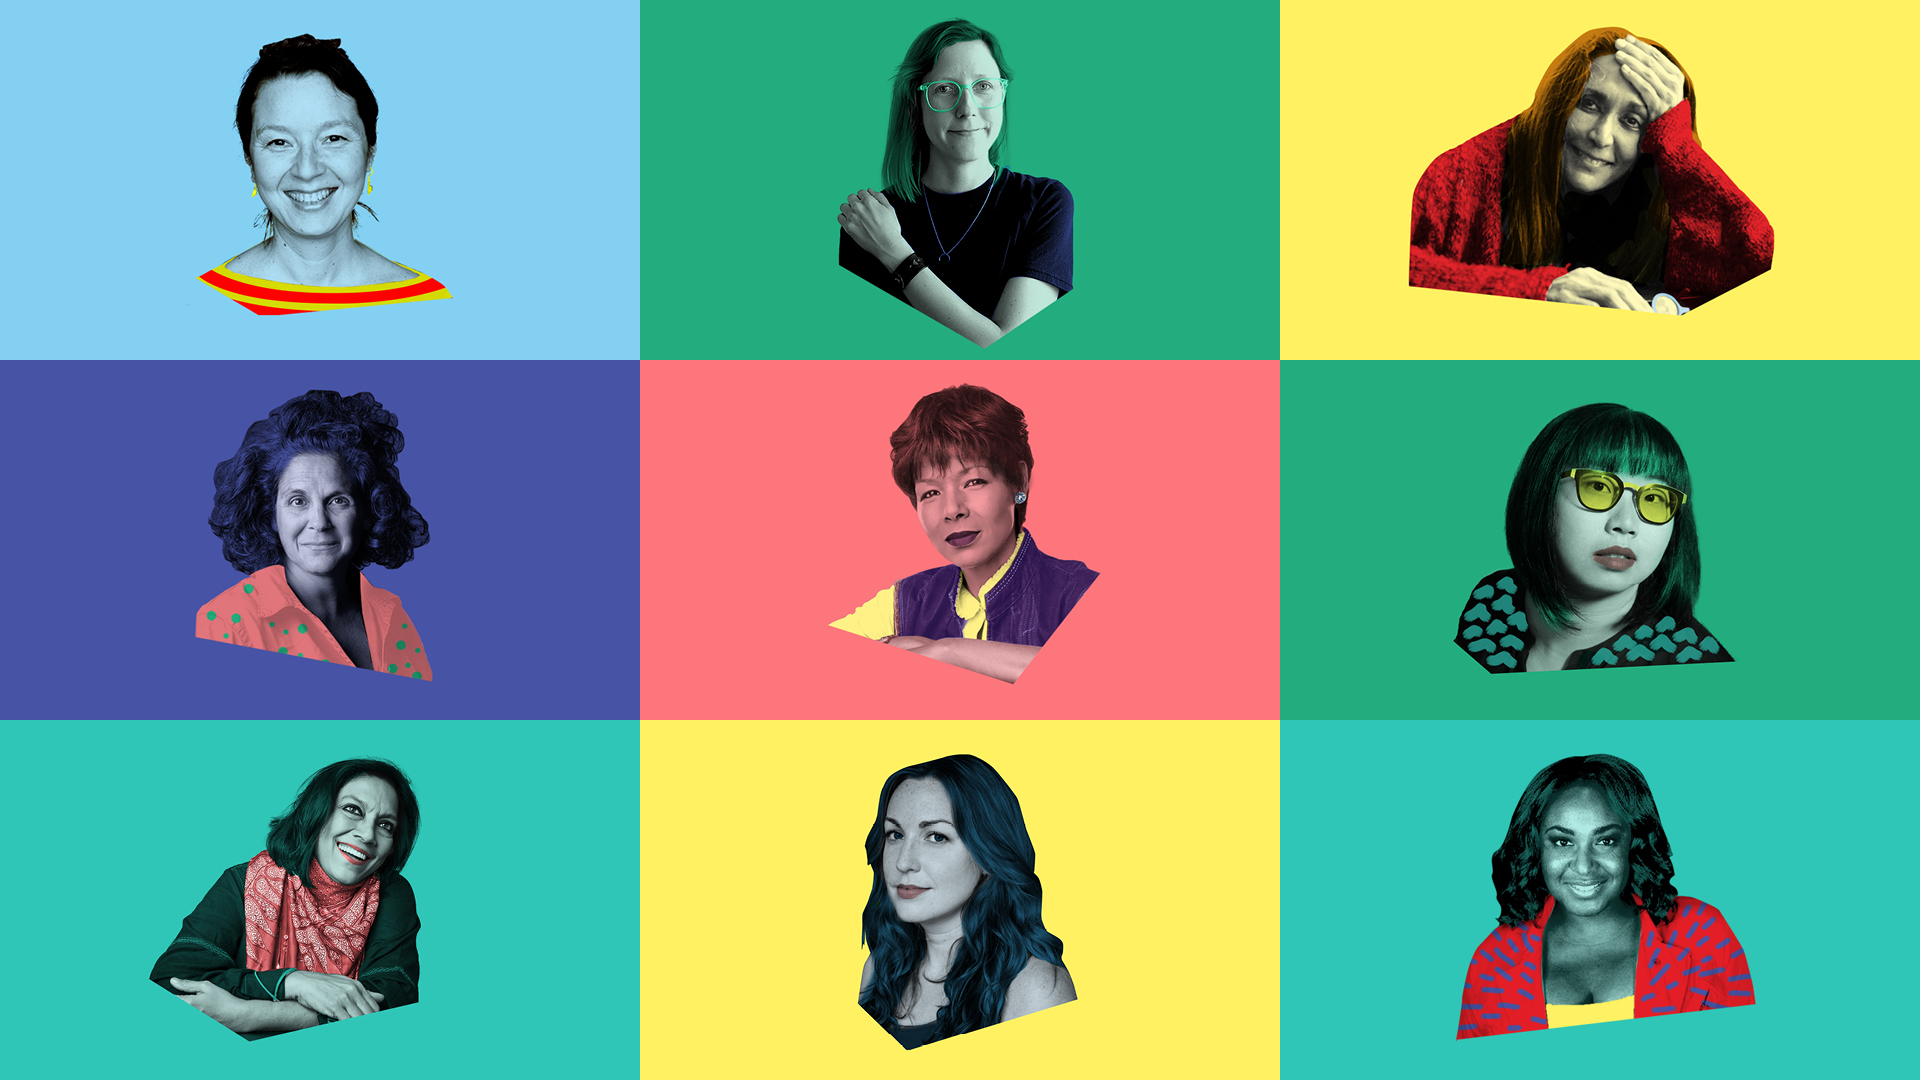 Pop art grid of women in film on coloured backgrounds.